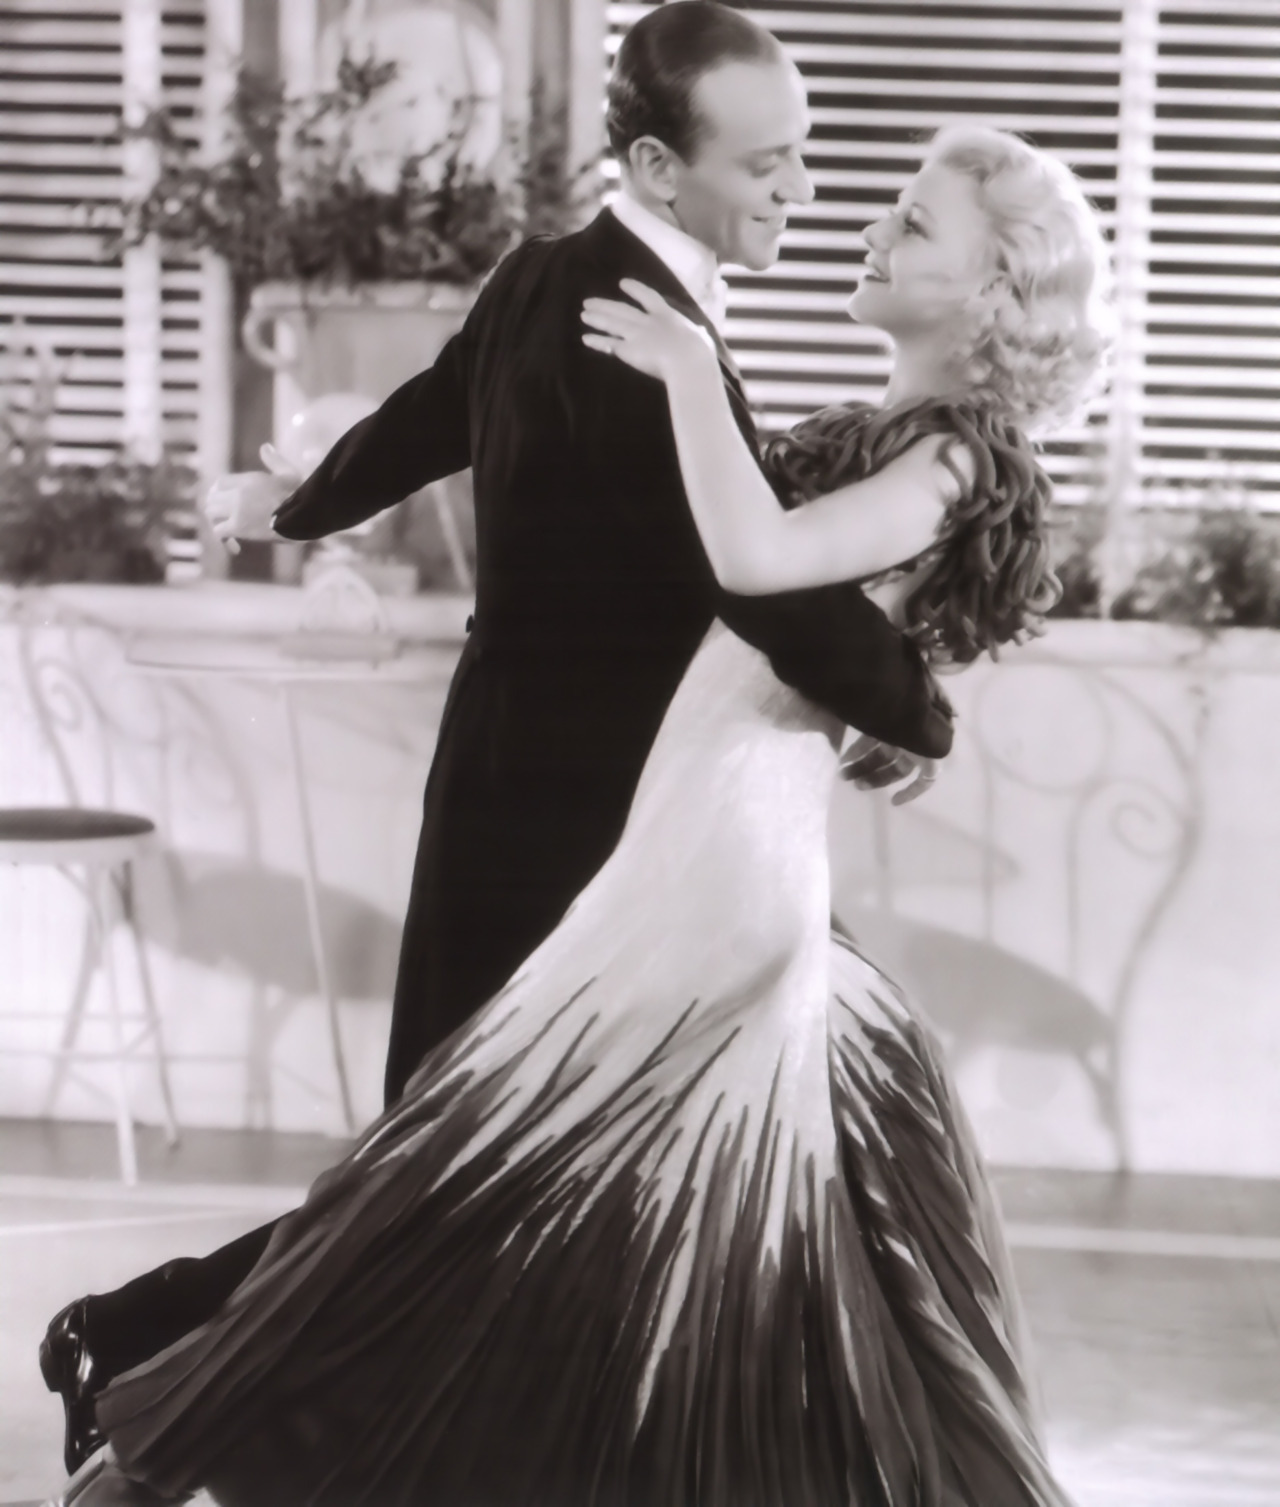 Fred Astaire & Ginger Rogers in The Gay Divorcee